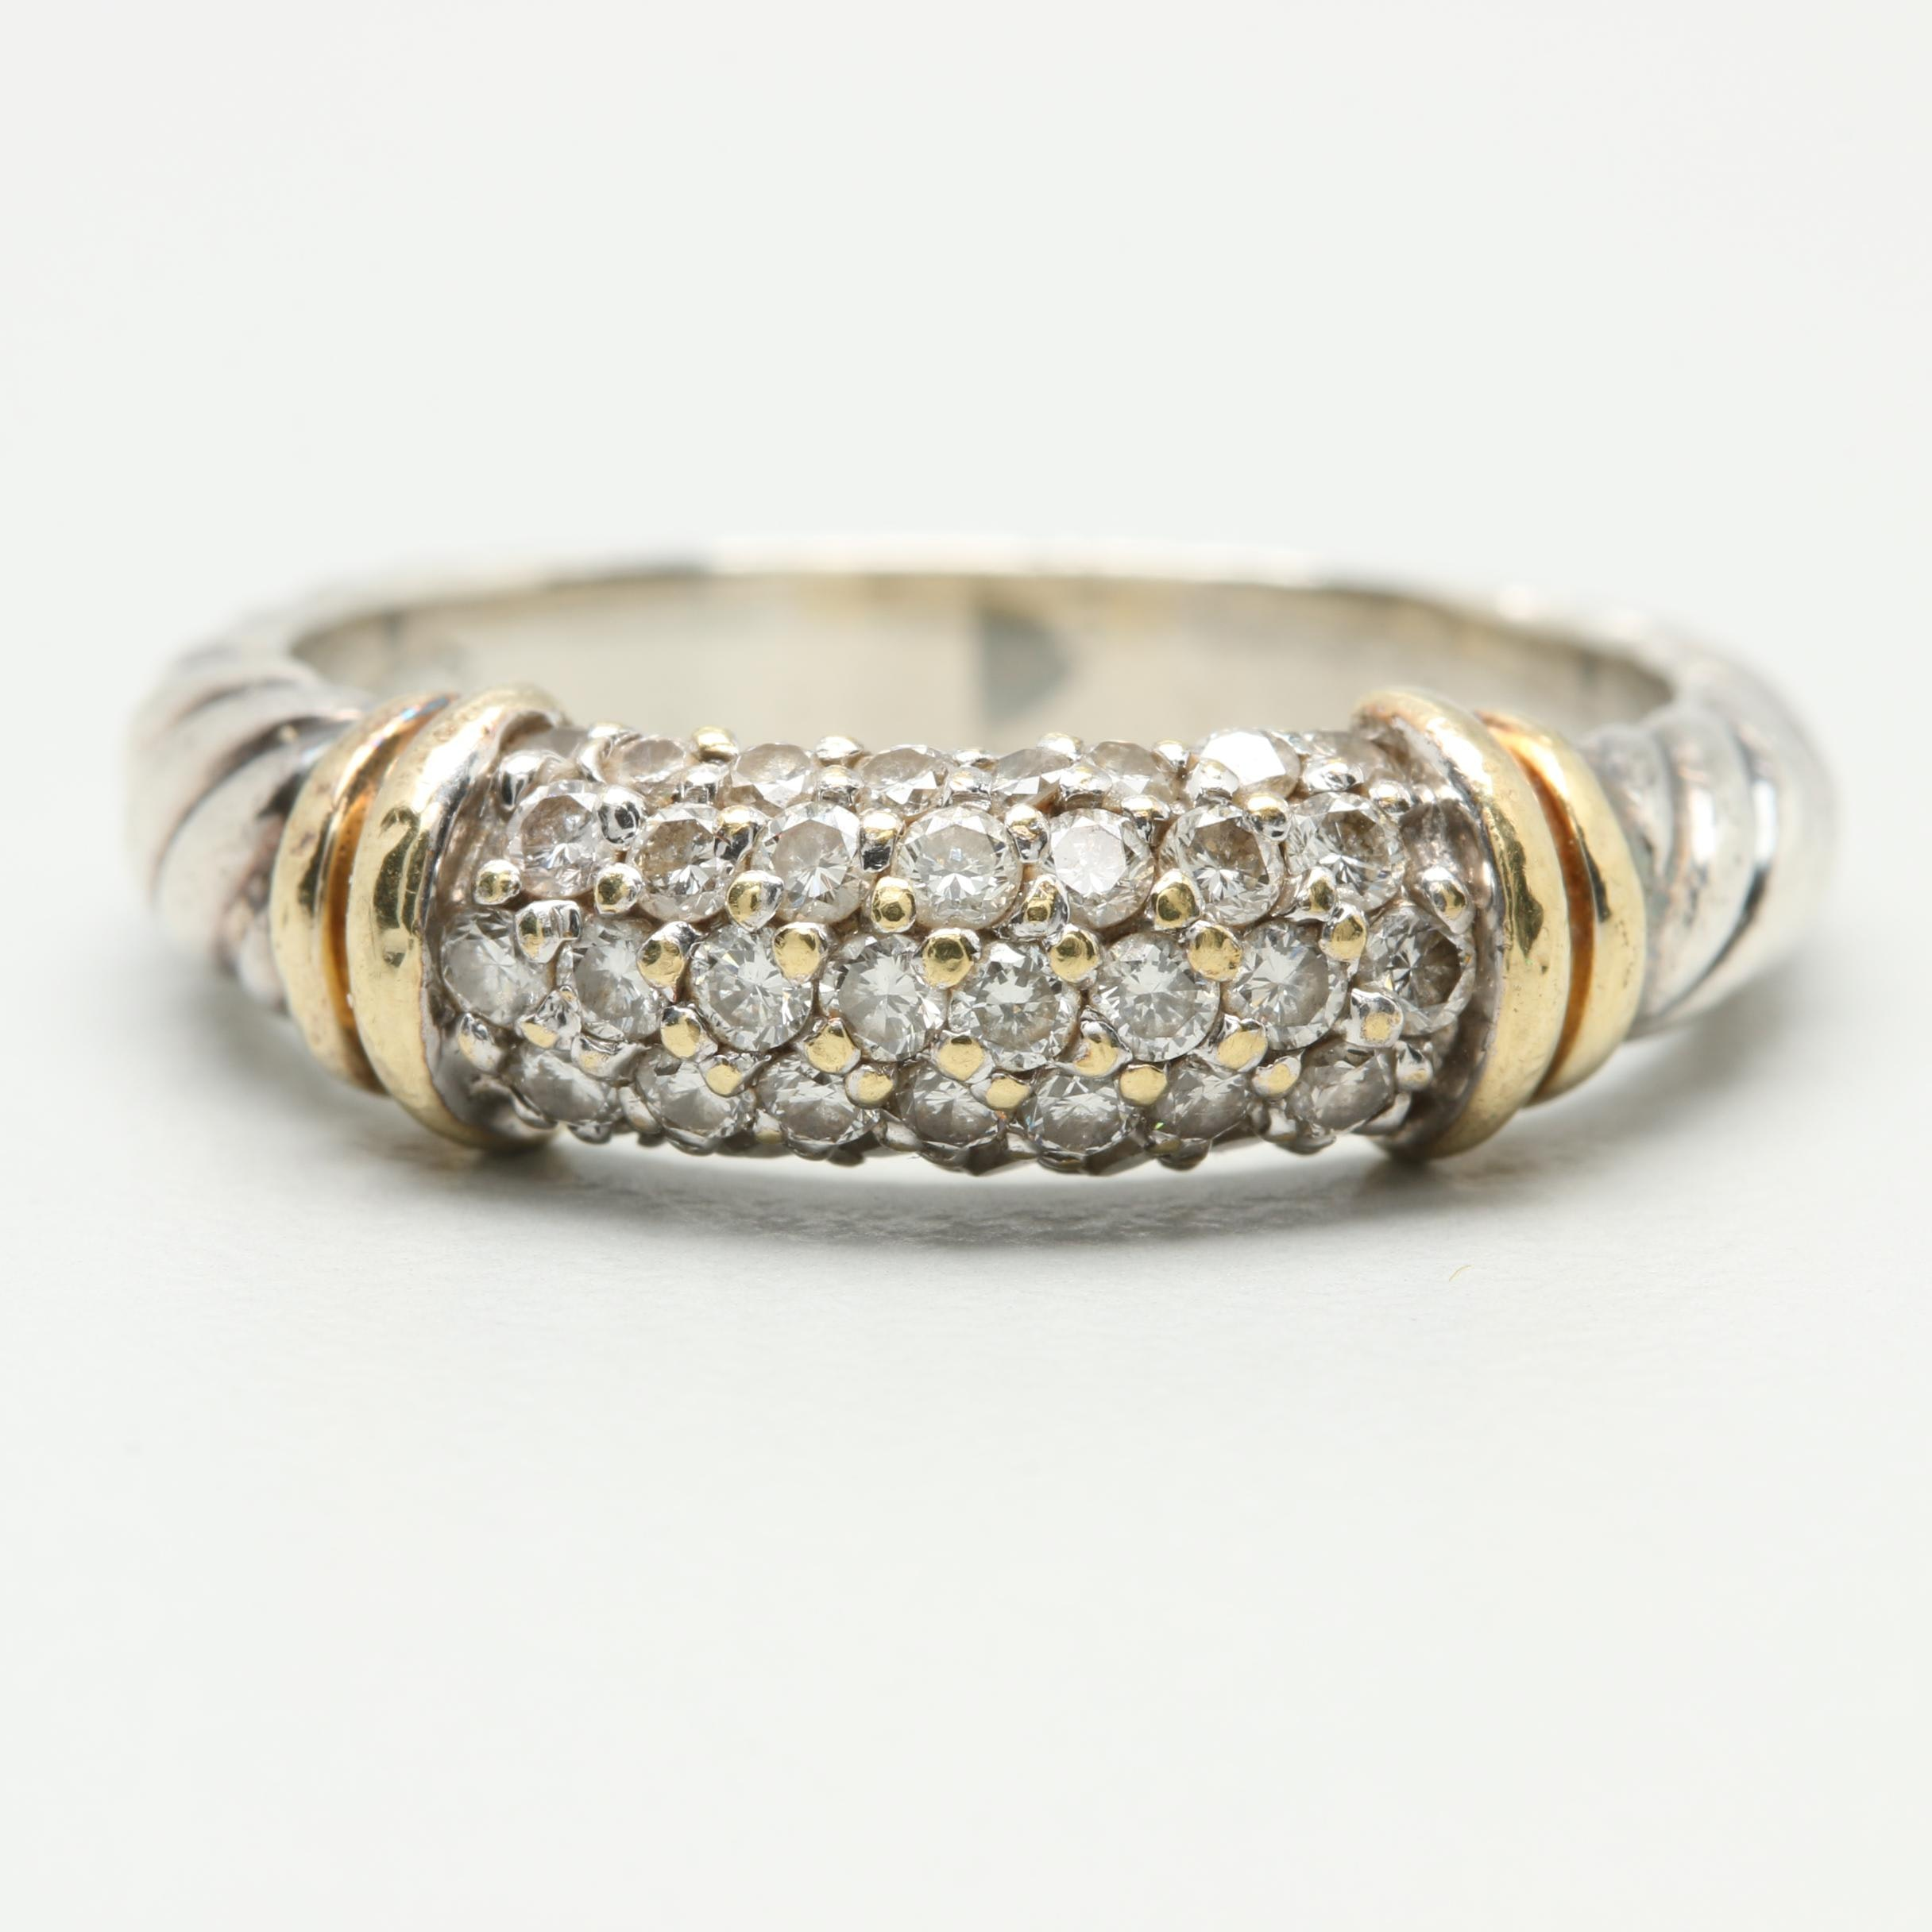 David Yurman Sterling Silver Diamond Ring with 18K Gold Accents